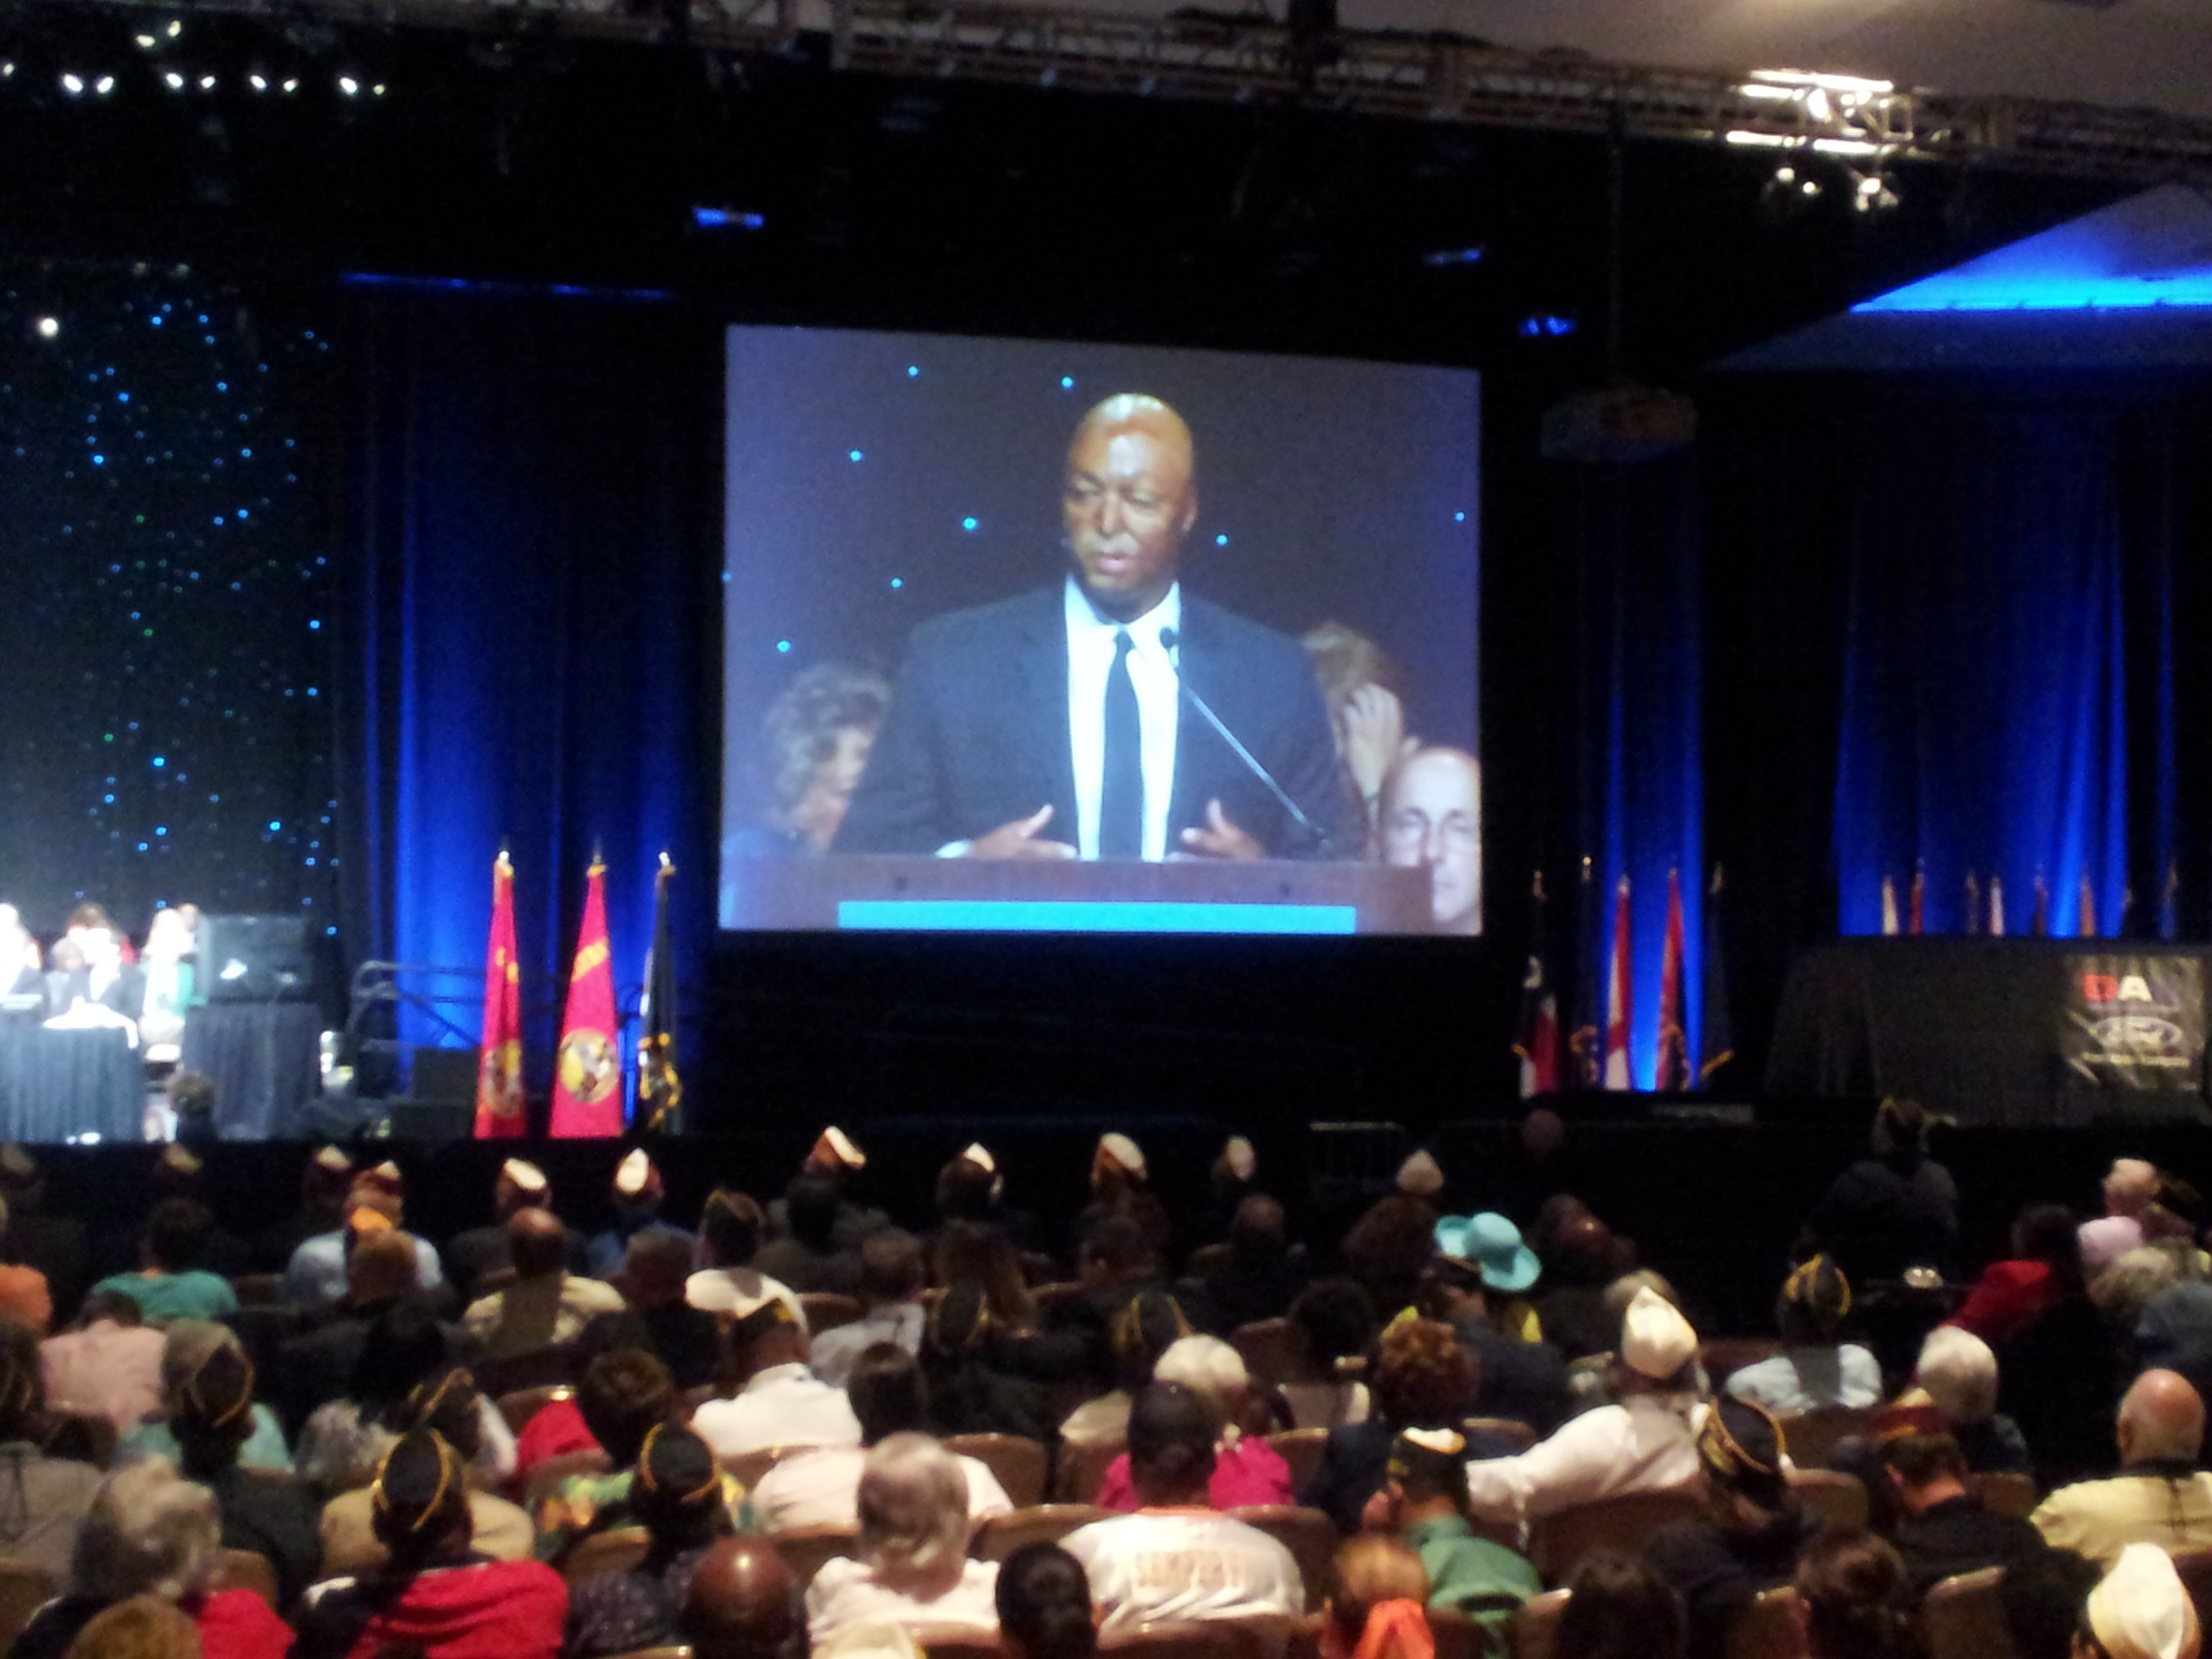 Veteran and actor J.R. Martinez also spoke at the DAV national convention (Christian Cazares/FOX5)